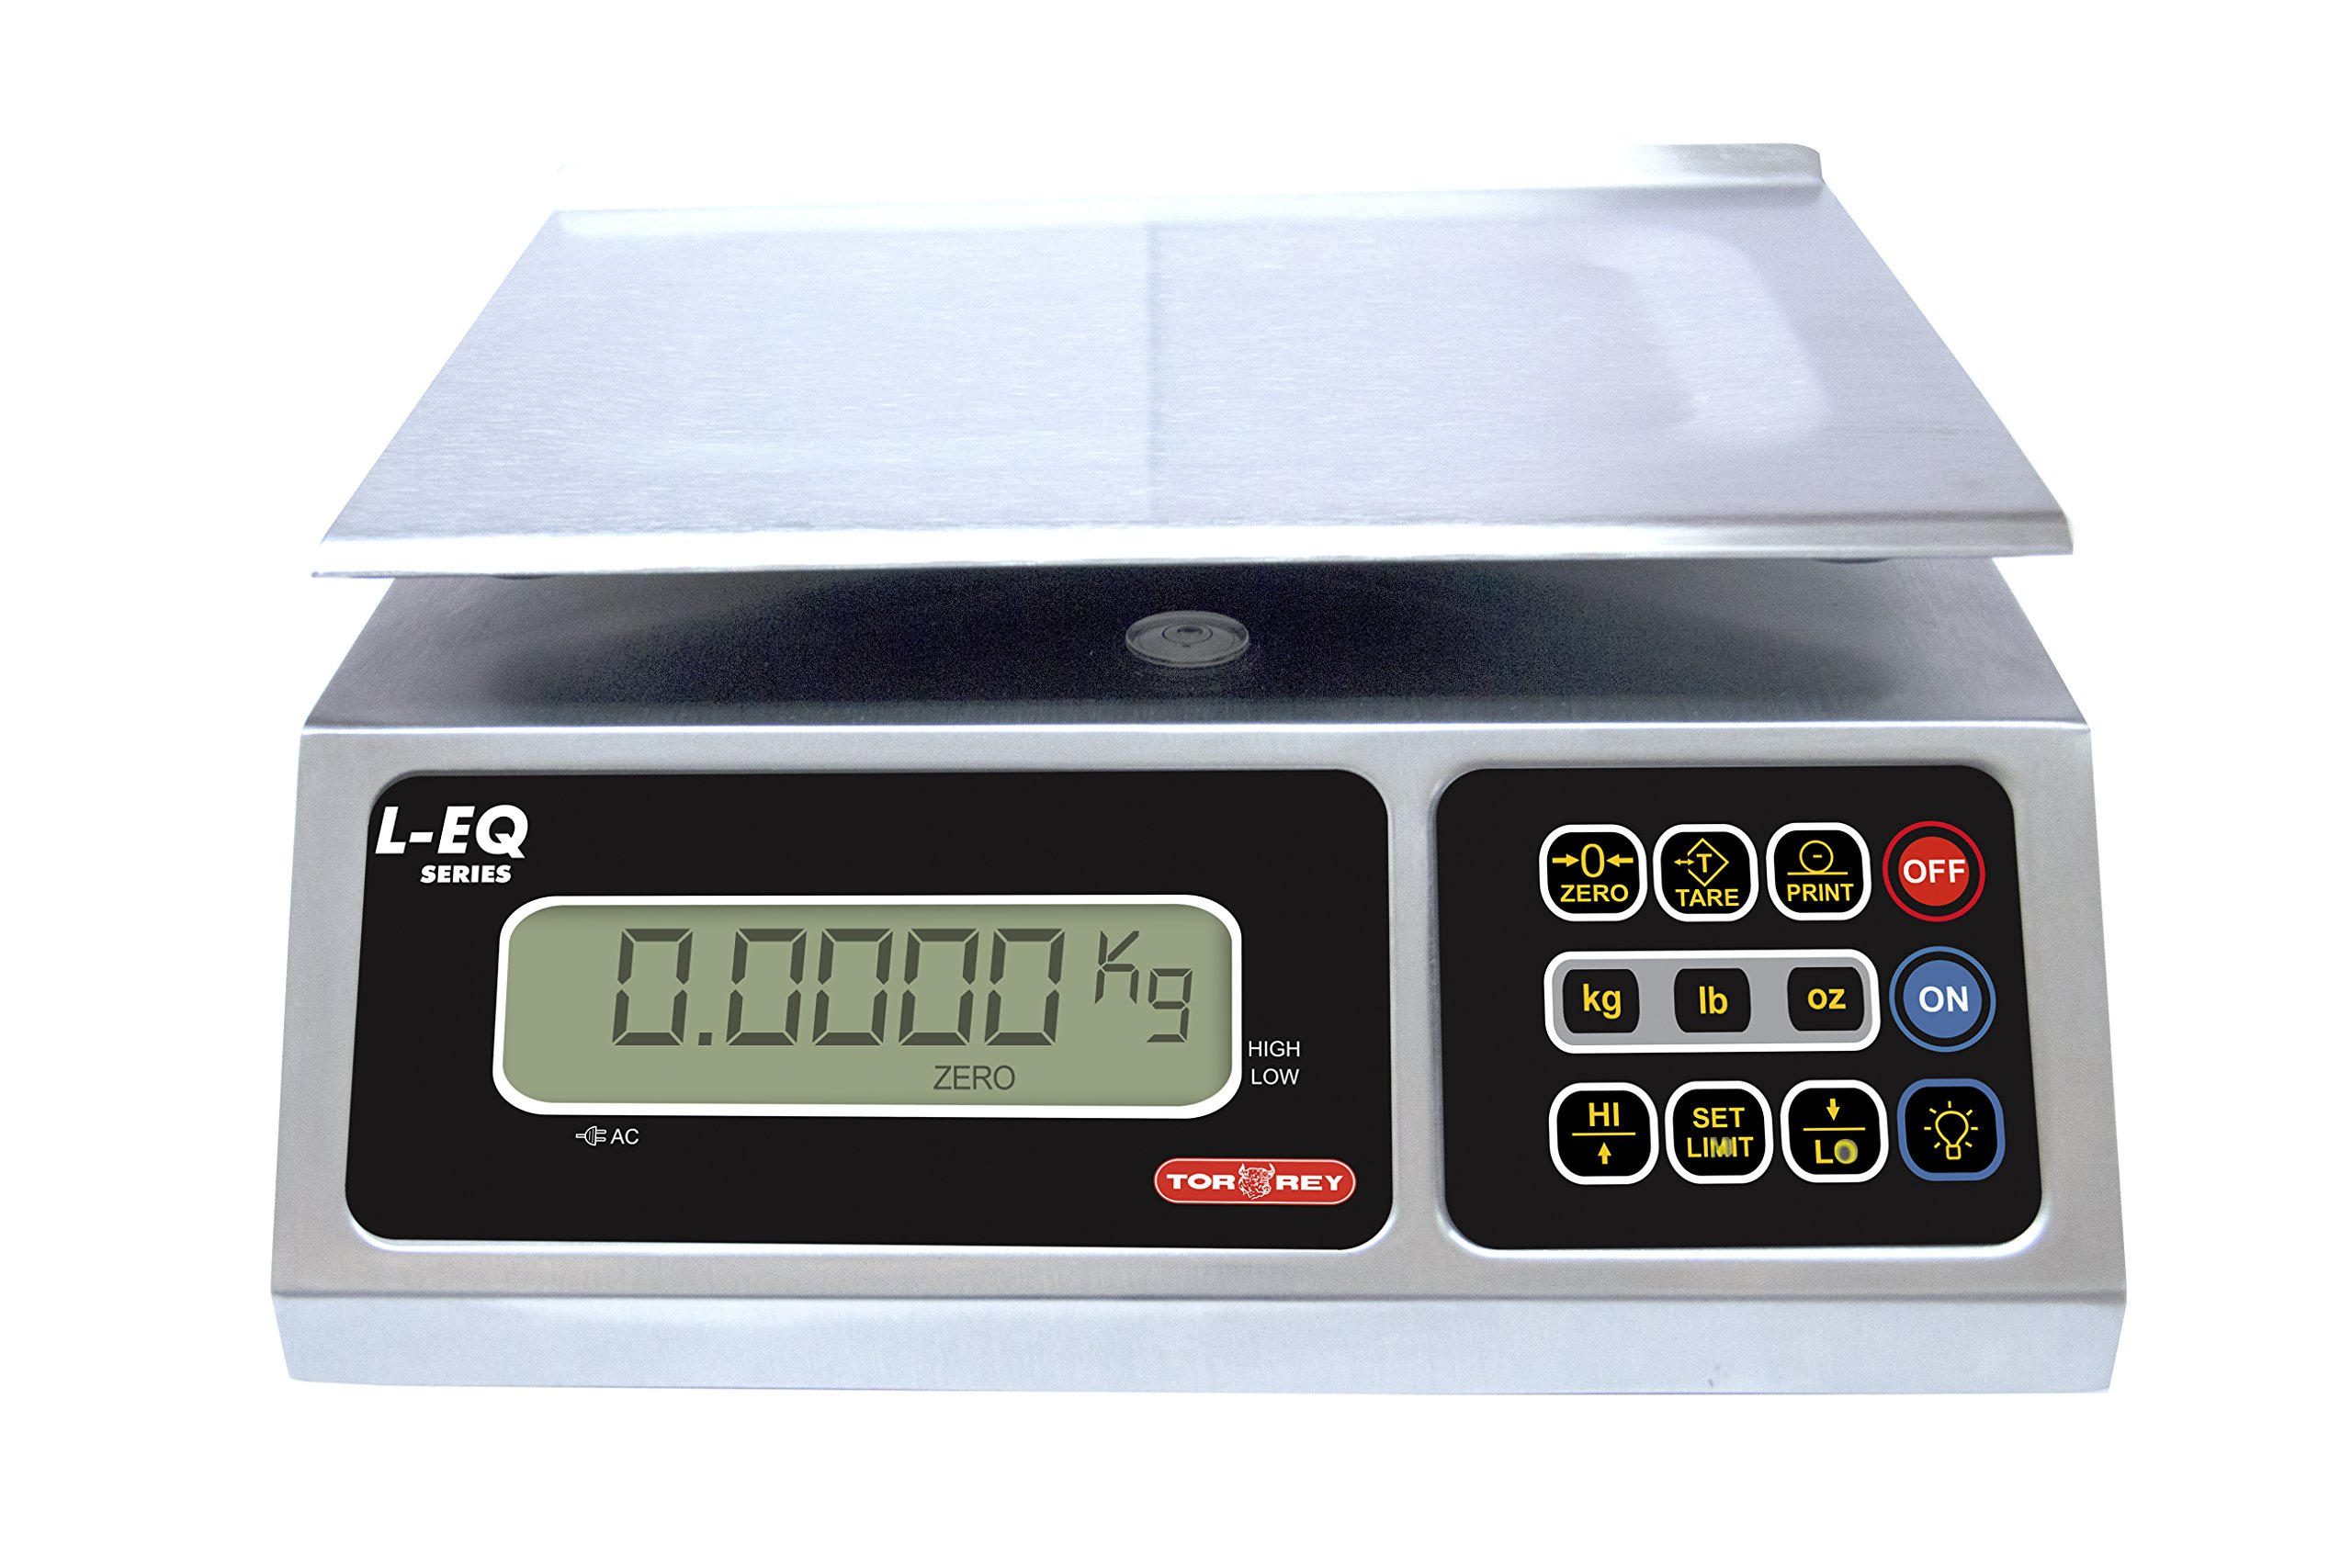 TORREY LEQ 10/20 High Precision Digital Portion Control Scale, Stainless Steel Construction, 10 kg/20 lb. Capacity by TORREY